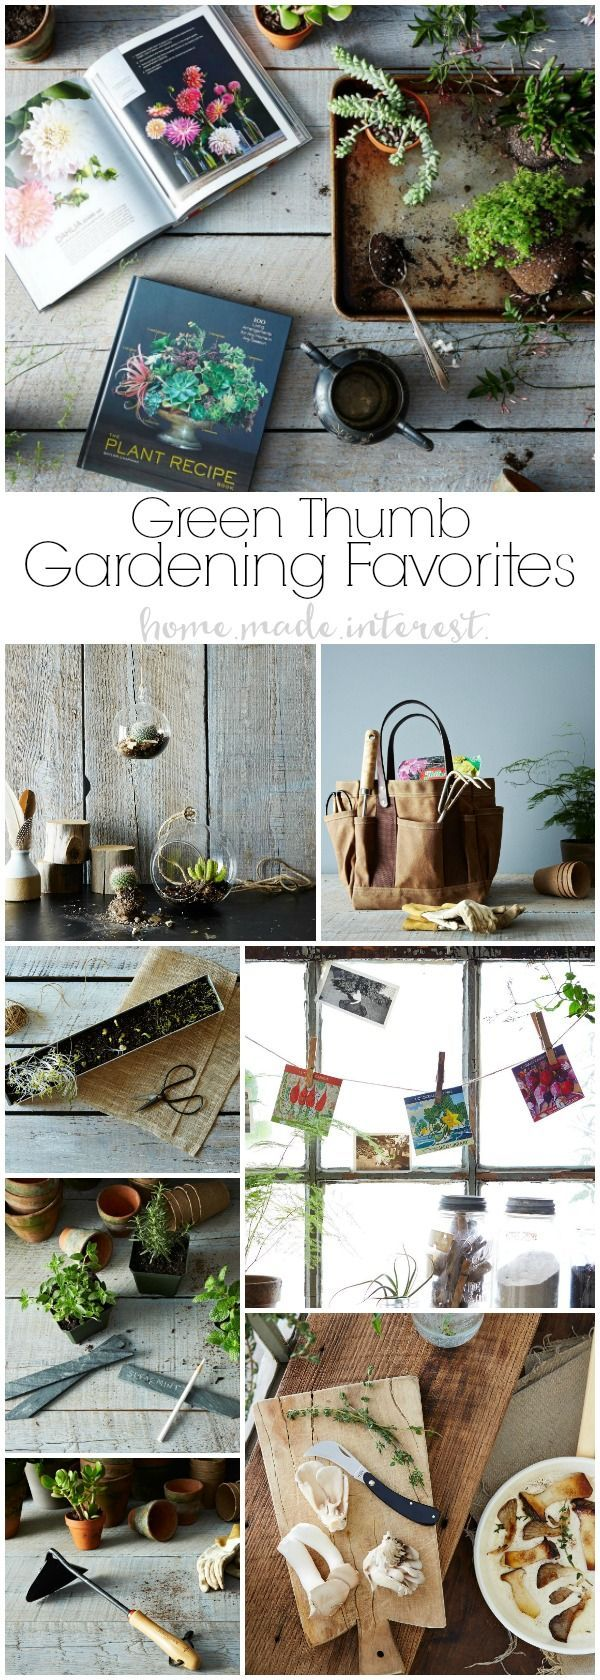 590 best holiday | christmas gift ideas images on pinterest